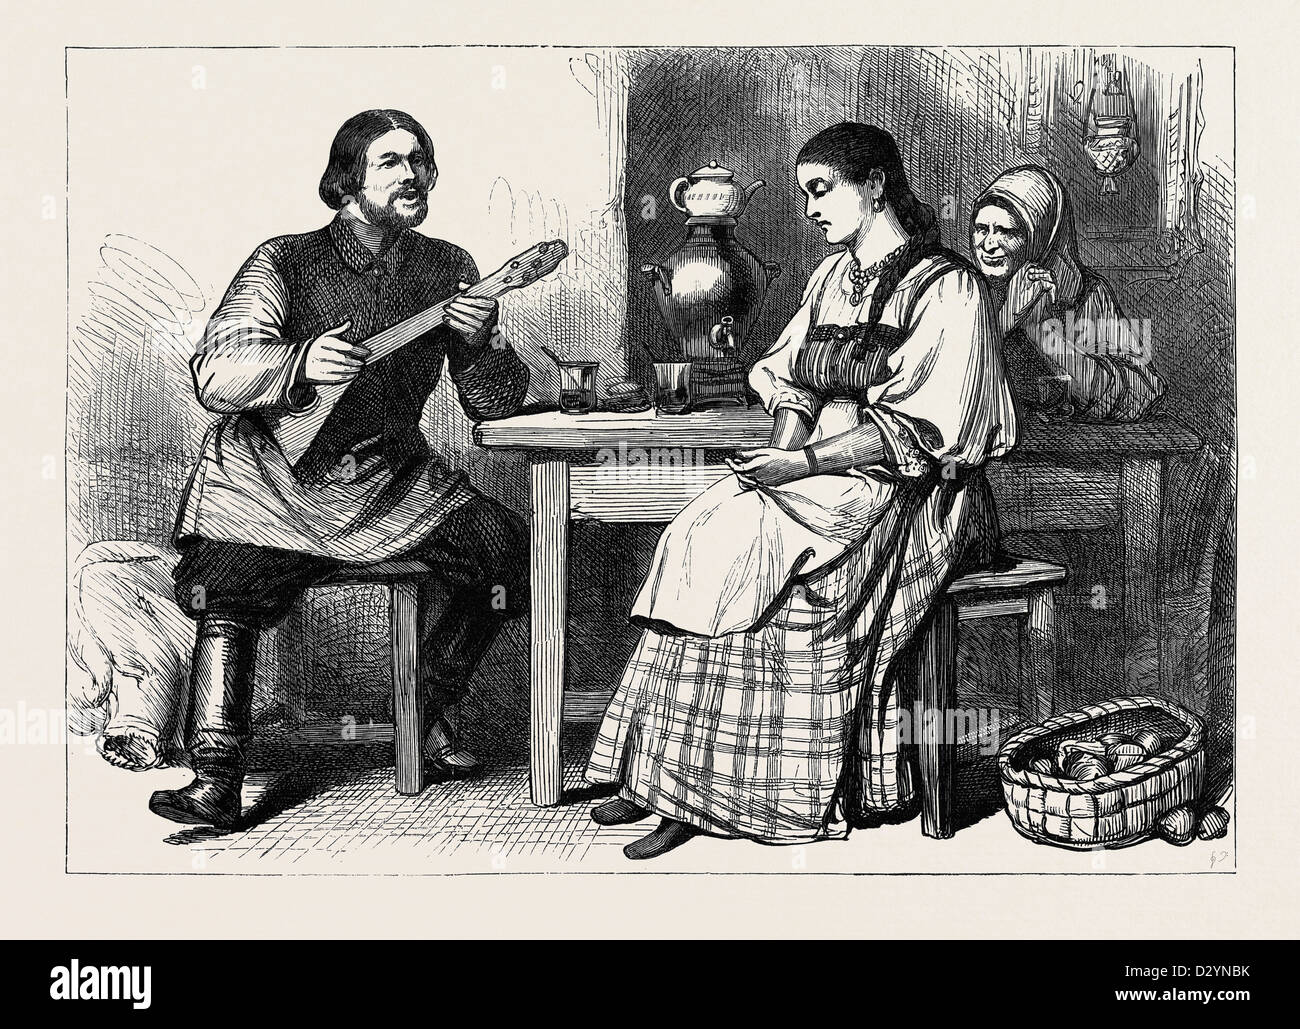 SKETCH OF LIFE IN RUSSIA: A MOUJIK'S COURTSHIP 1880 - Stock Image